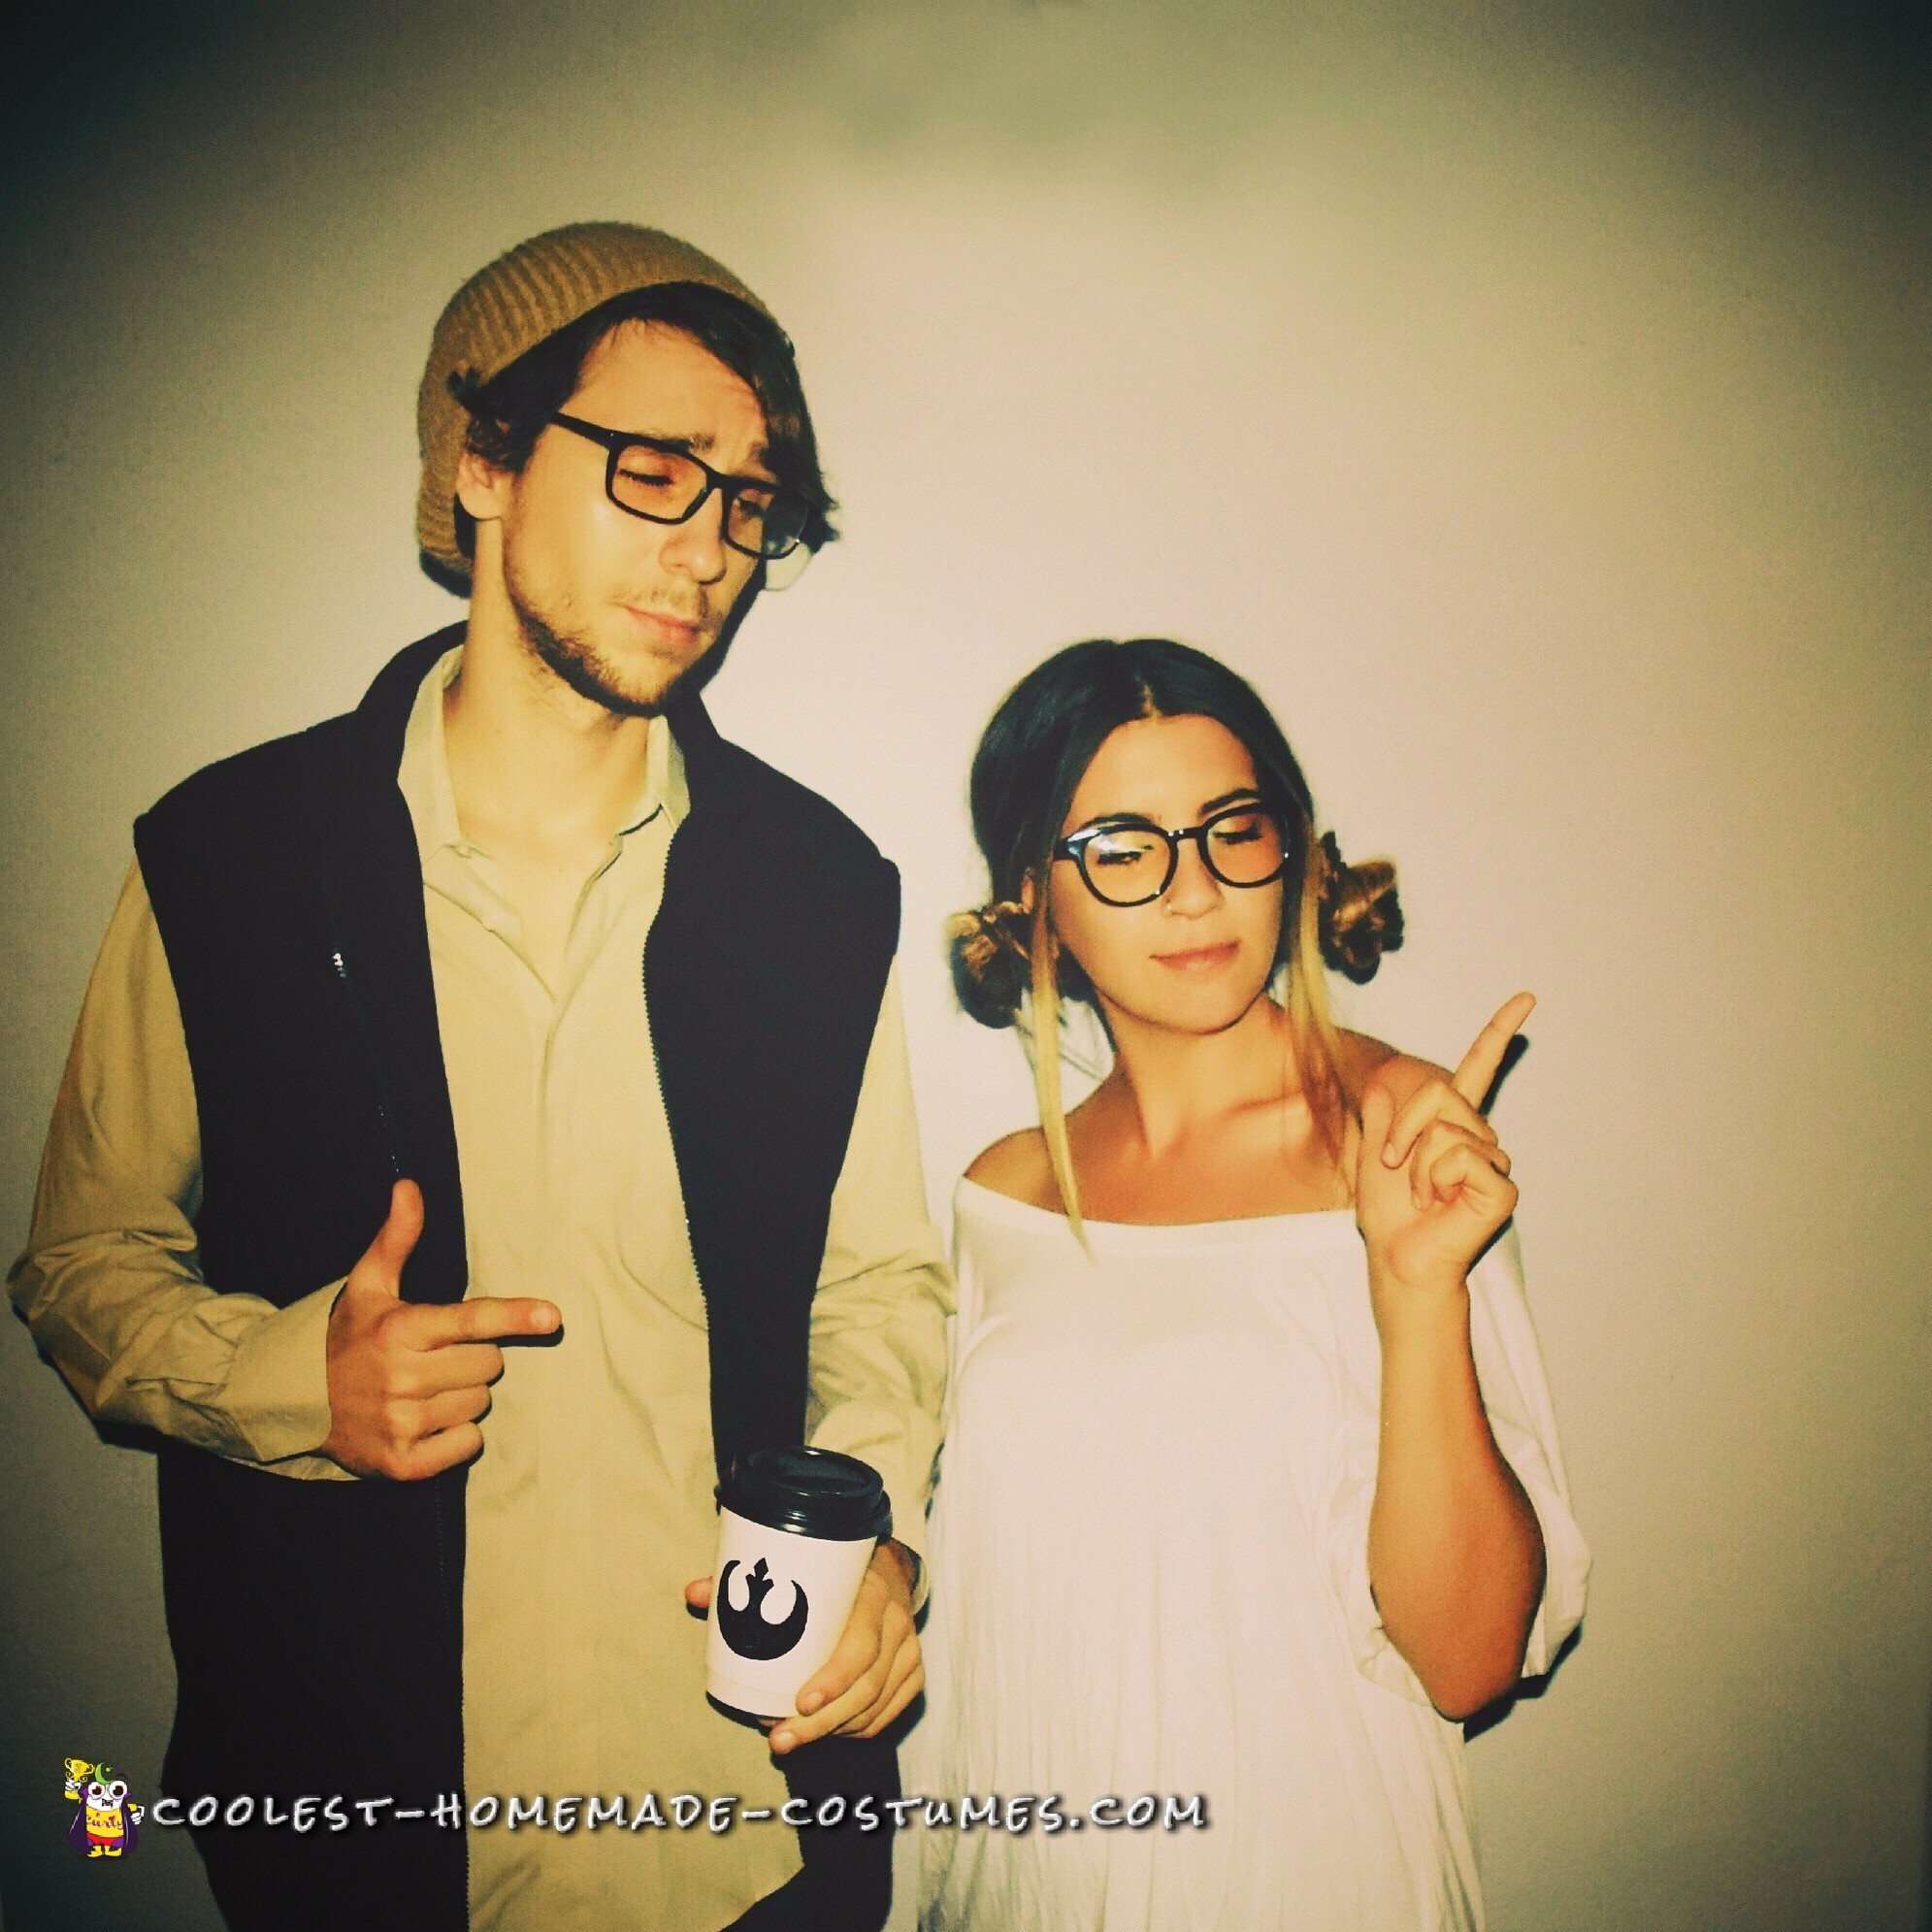 hipster han solo and princess leia couple costume. Black Bedroom Furniture Sets. Home Design Ideas